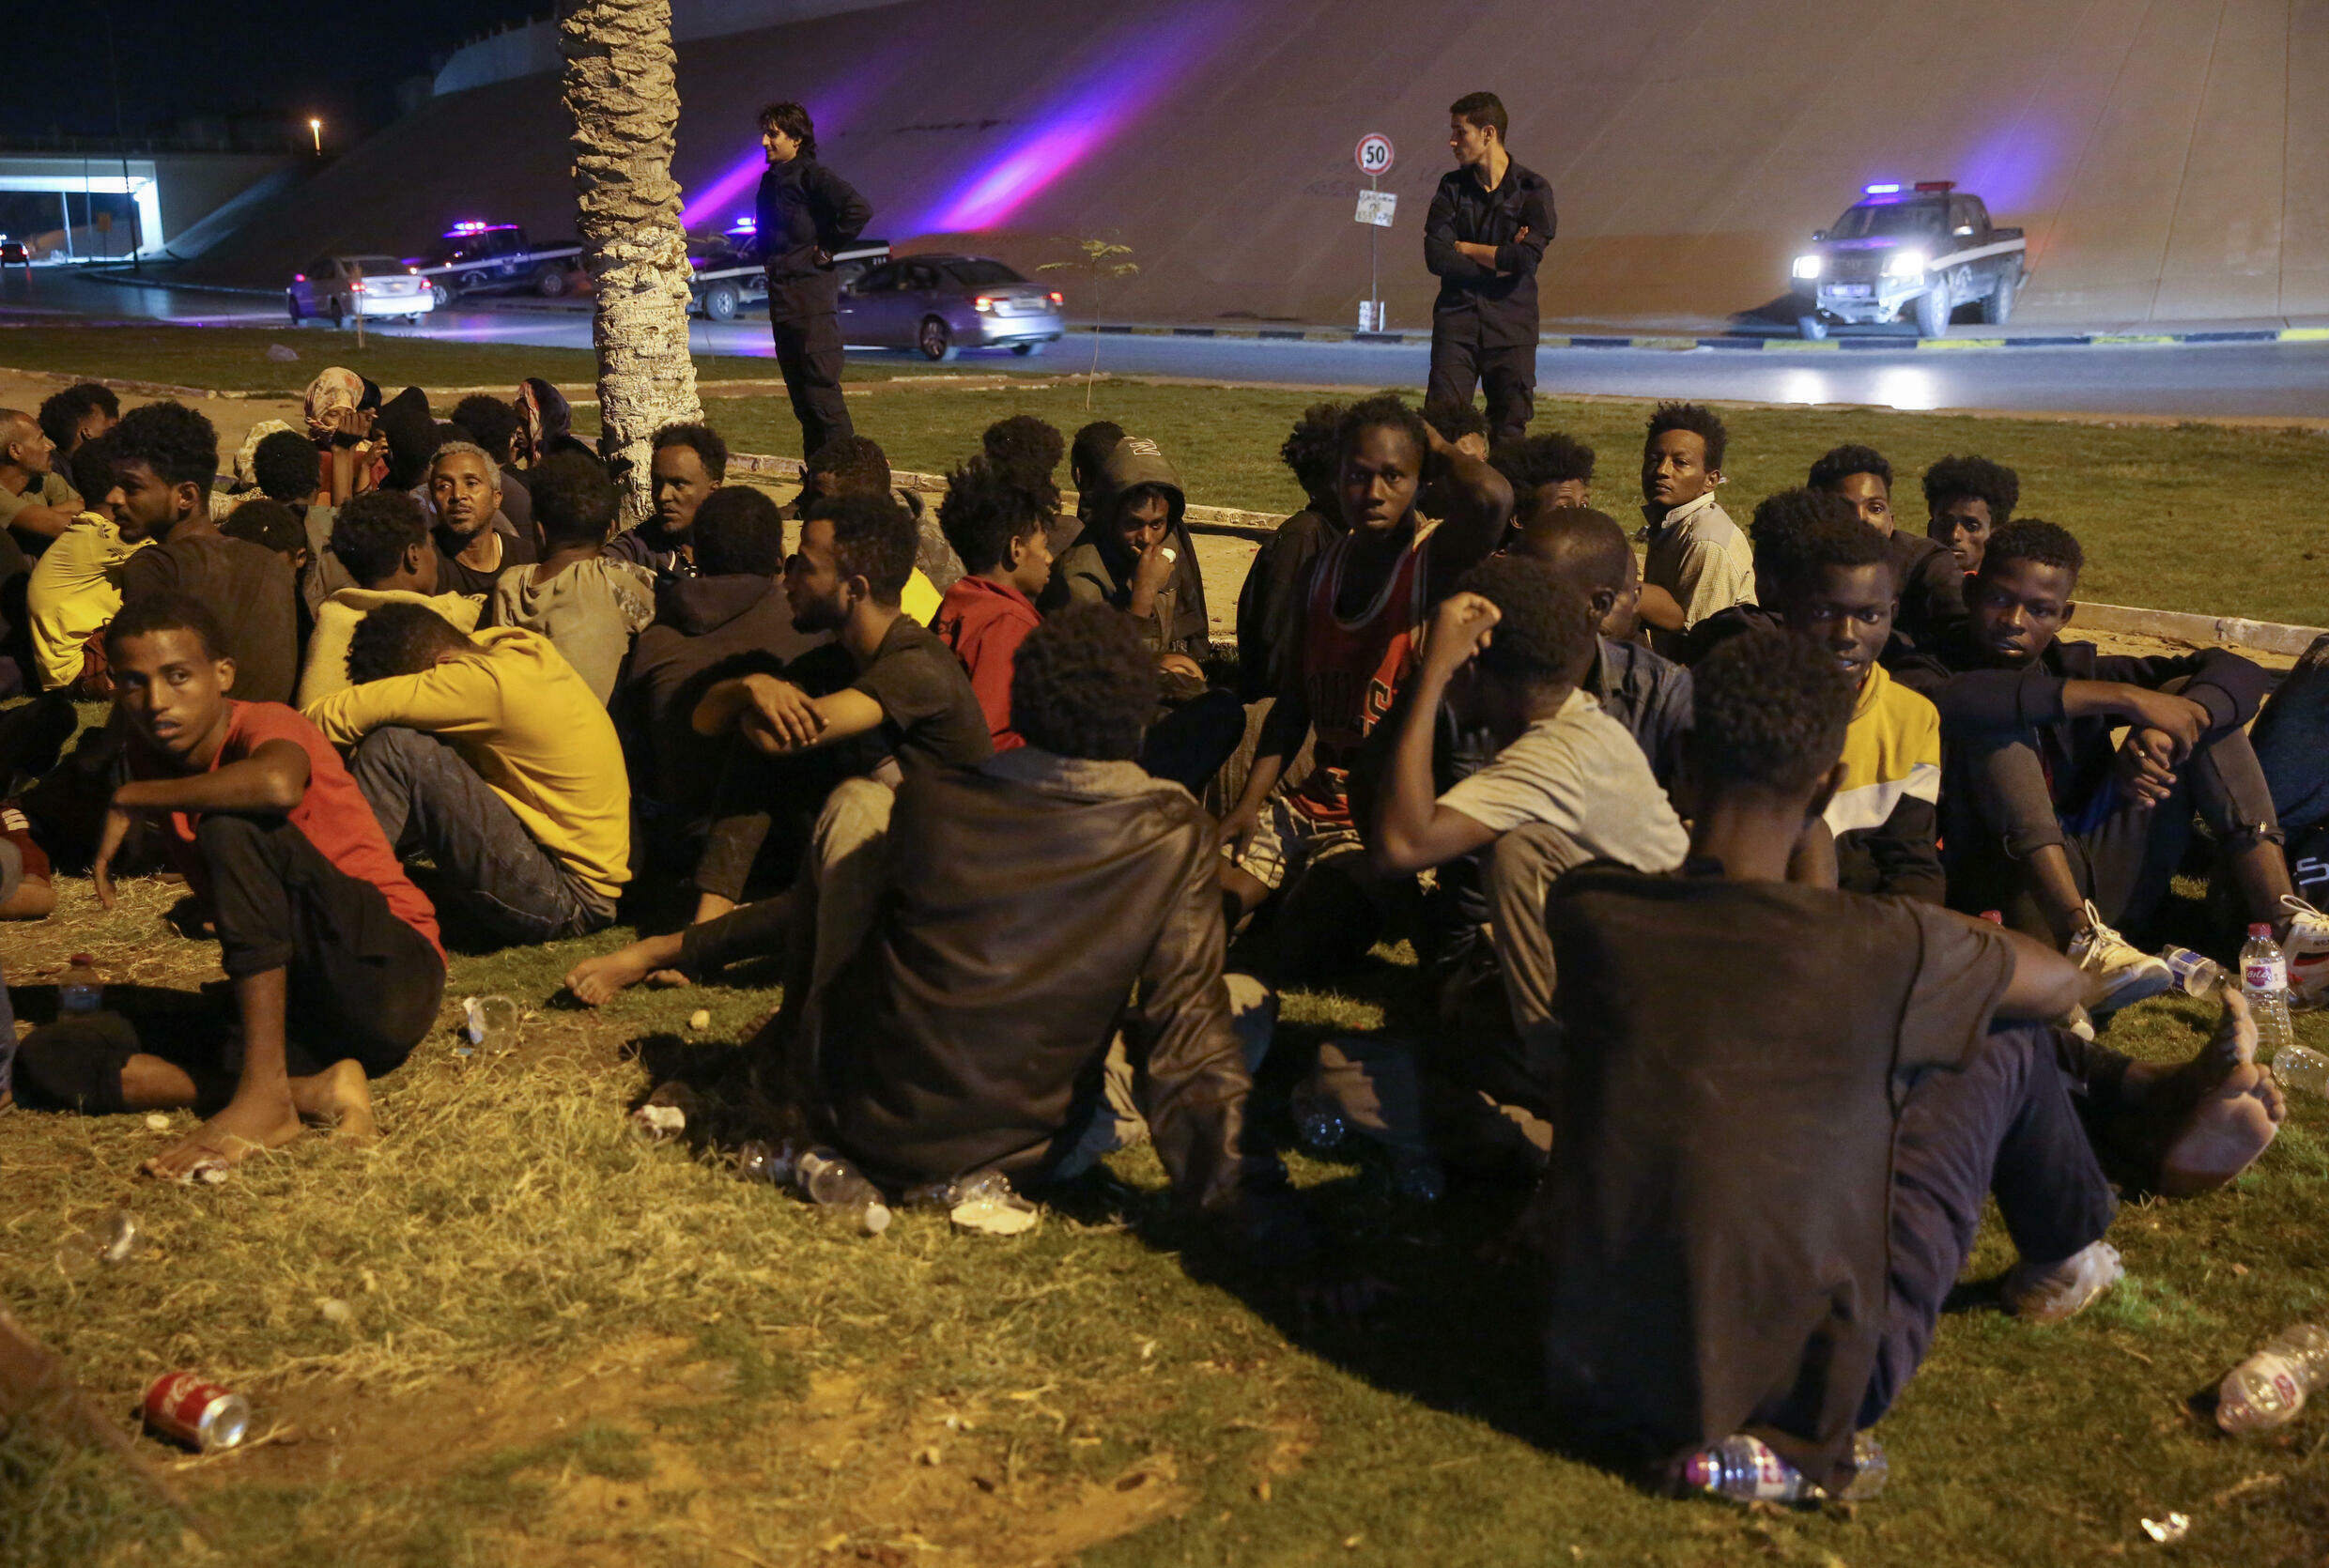 Migrants sit on the ground after being recaptured by Libyan security forces following an escape attempt from a detention facility in the capital Tripoli, on October 8, 2021